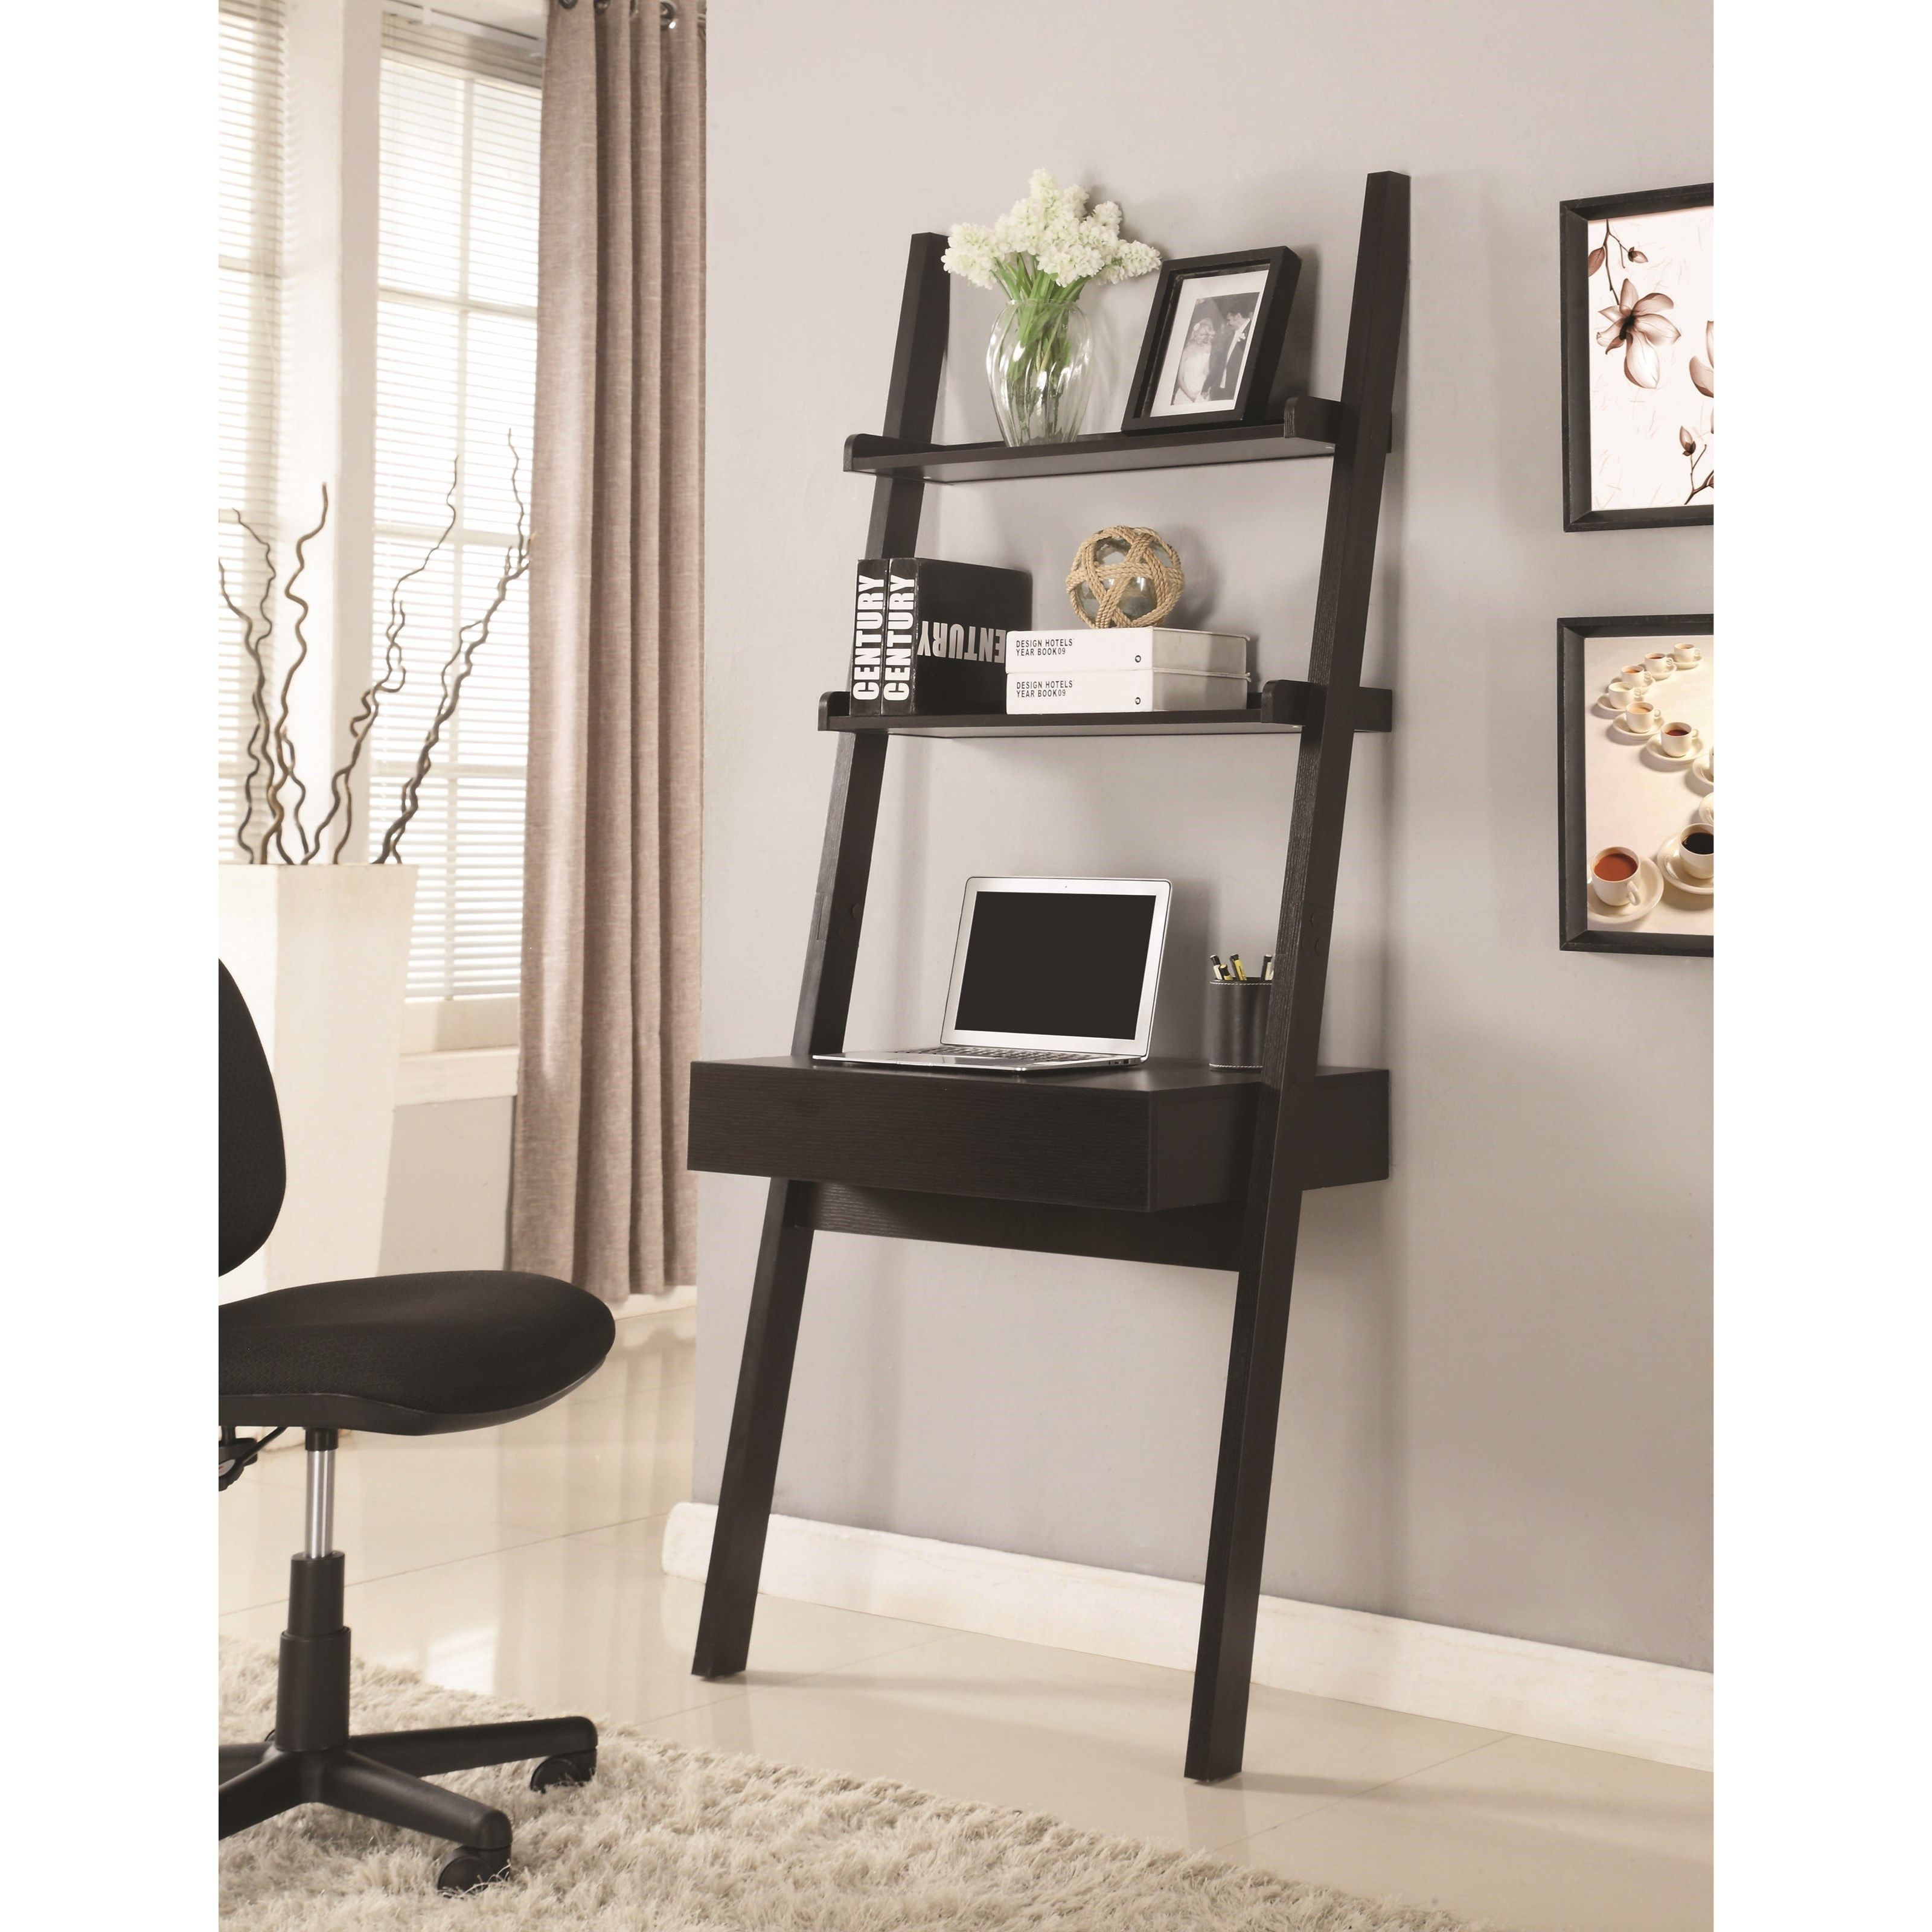 Charmant Coaster Desks Wall Leaning Writing Ladder Desk   Rooms Furniture   Table  Desks/Writing Desks Houston, Sugar Land, Katy, Missouri City, Texas